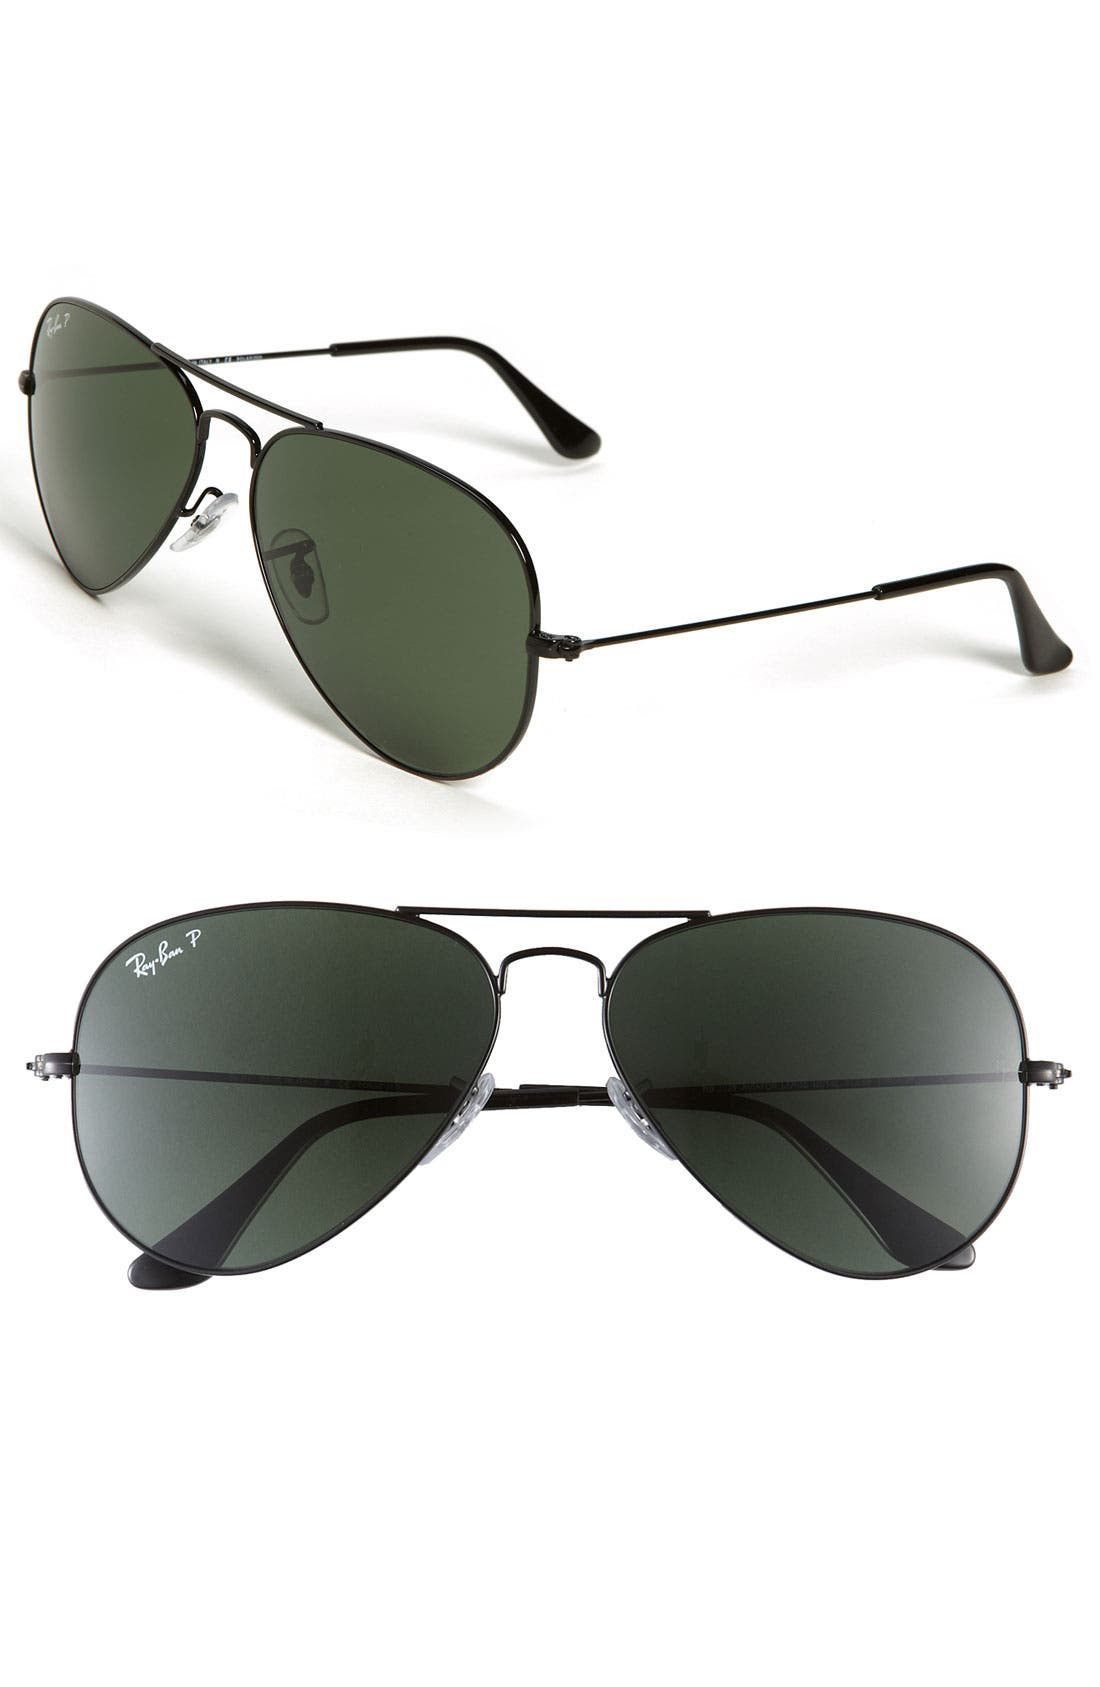 Alternate Image 1 Selected - Ray-Ban Original Aviator 58mm Polarized Sunglasses